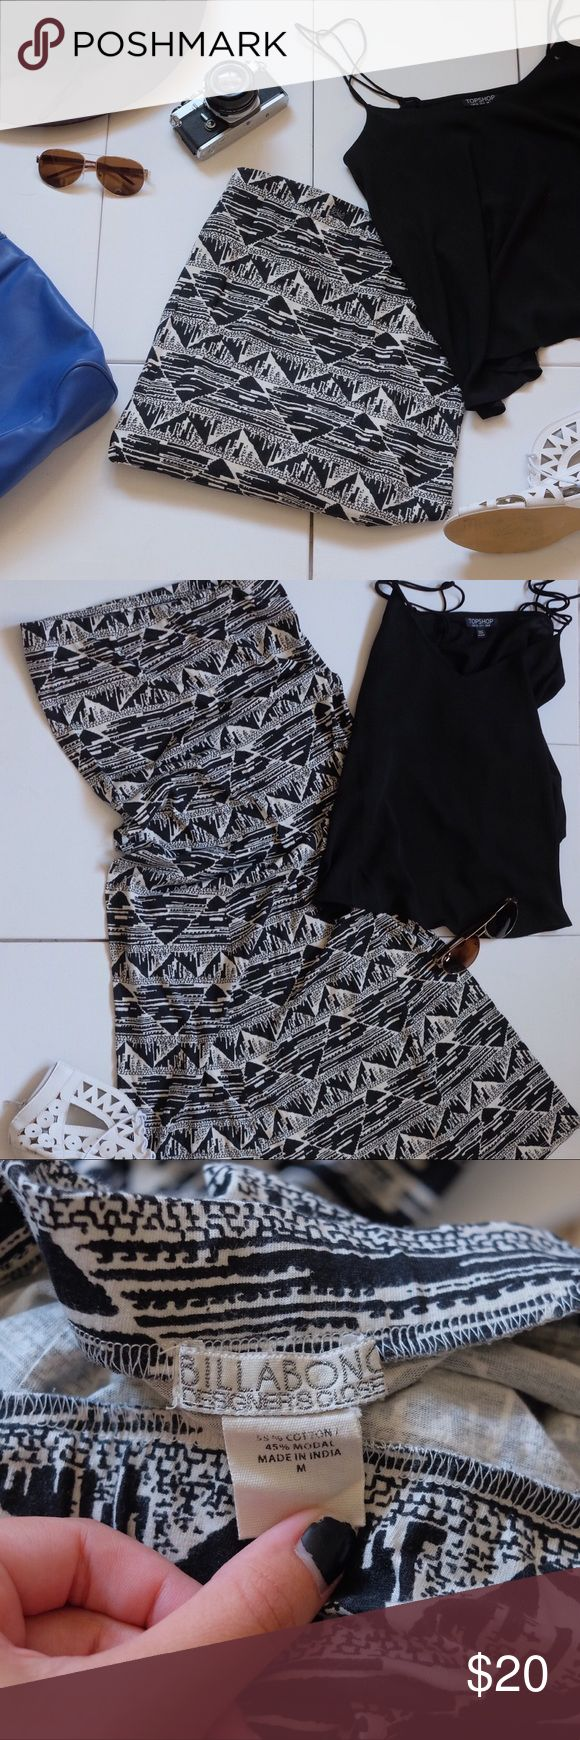 """NWOT Billabong Aztec black and white maxi skirt NWOT Billabong Aztec black and white maxi skirt, unfortunately it just doesn't fit, it's a lovely skirt and I really wish it fit! It's gorgeous! Length is 40.5"""" and a size medium. NOT LLR BRAND IS BILLABONG. TAGGED FOR EXPOSURE. LuLaRoe Skirts Maxi"""